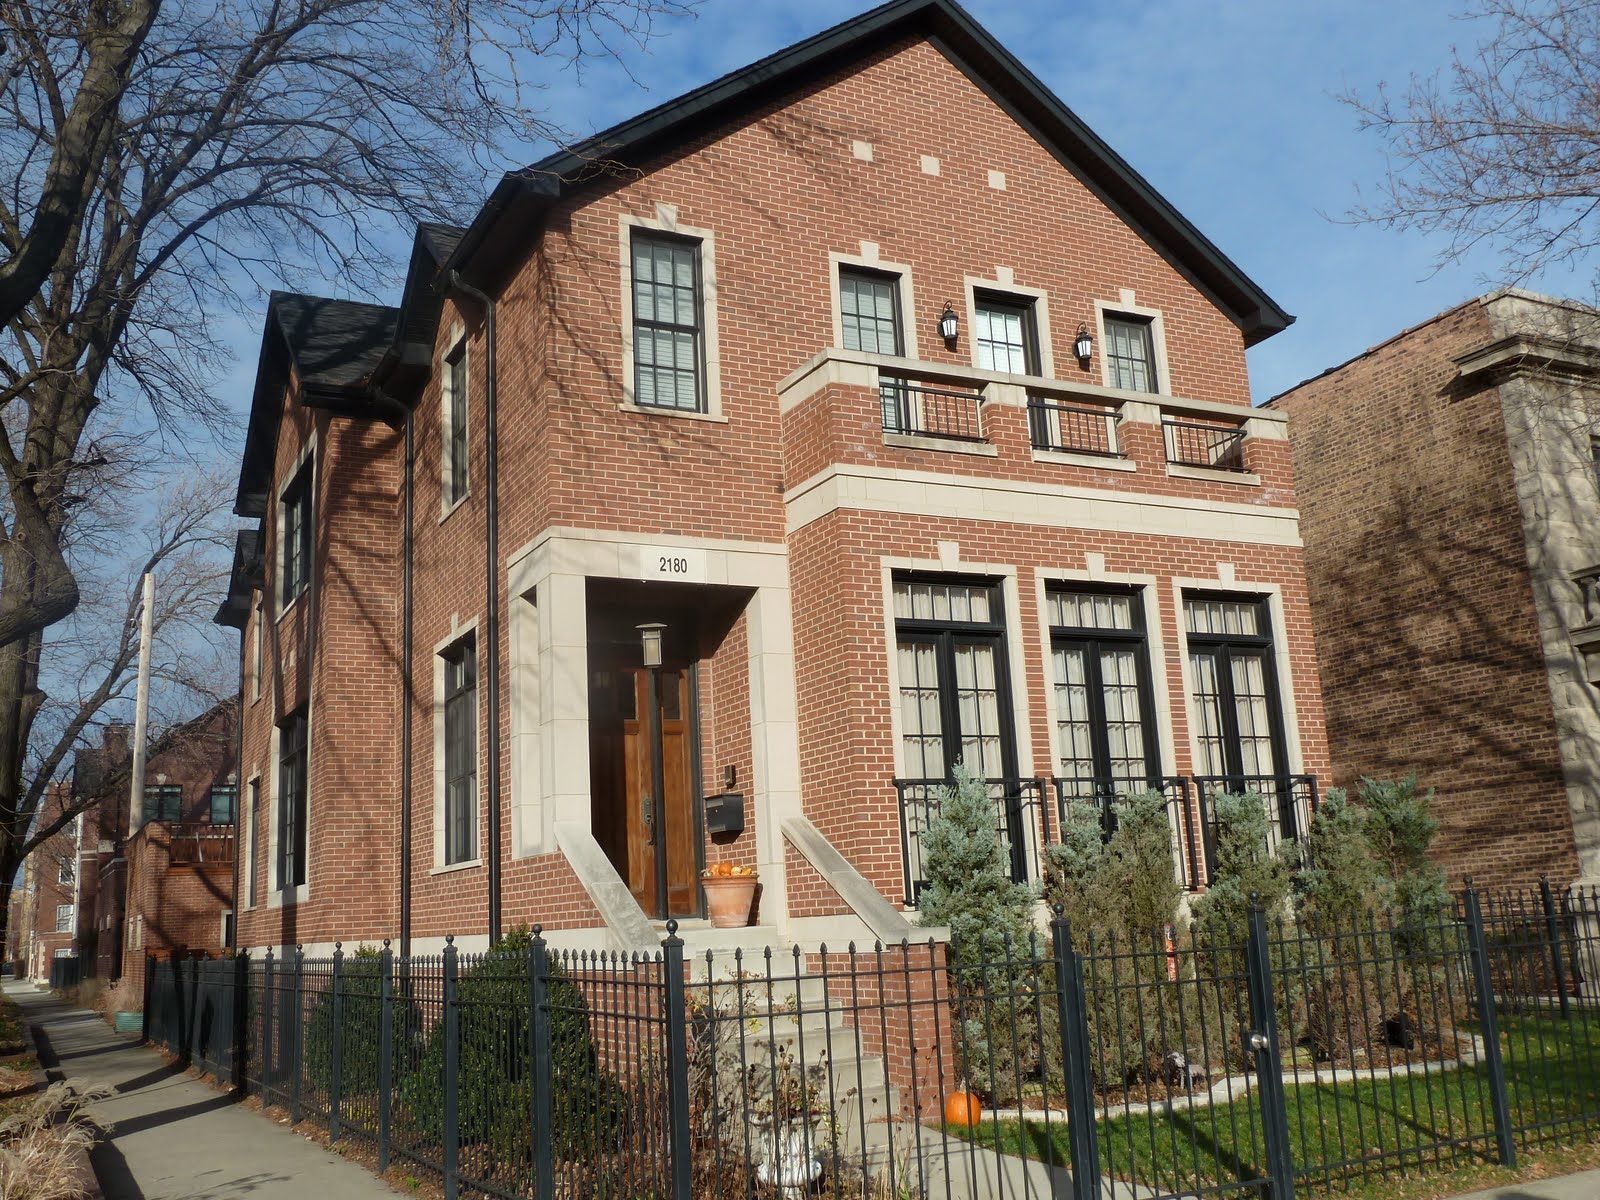 The chicago real estate local lincoln square million for 5 million dollar home